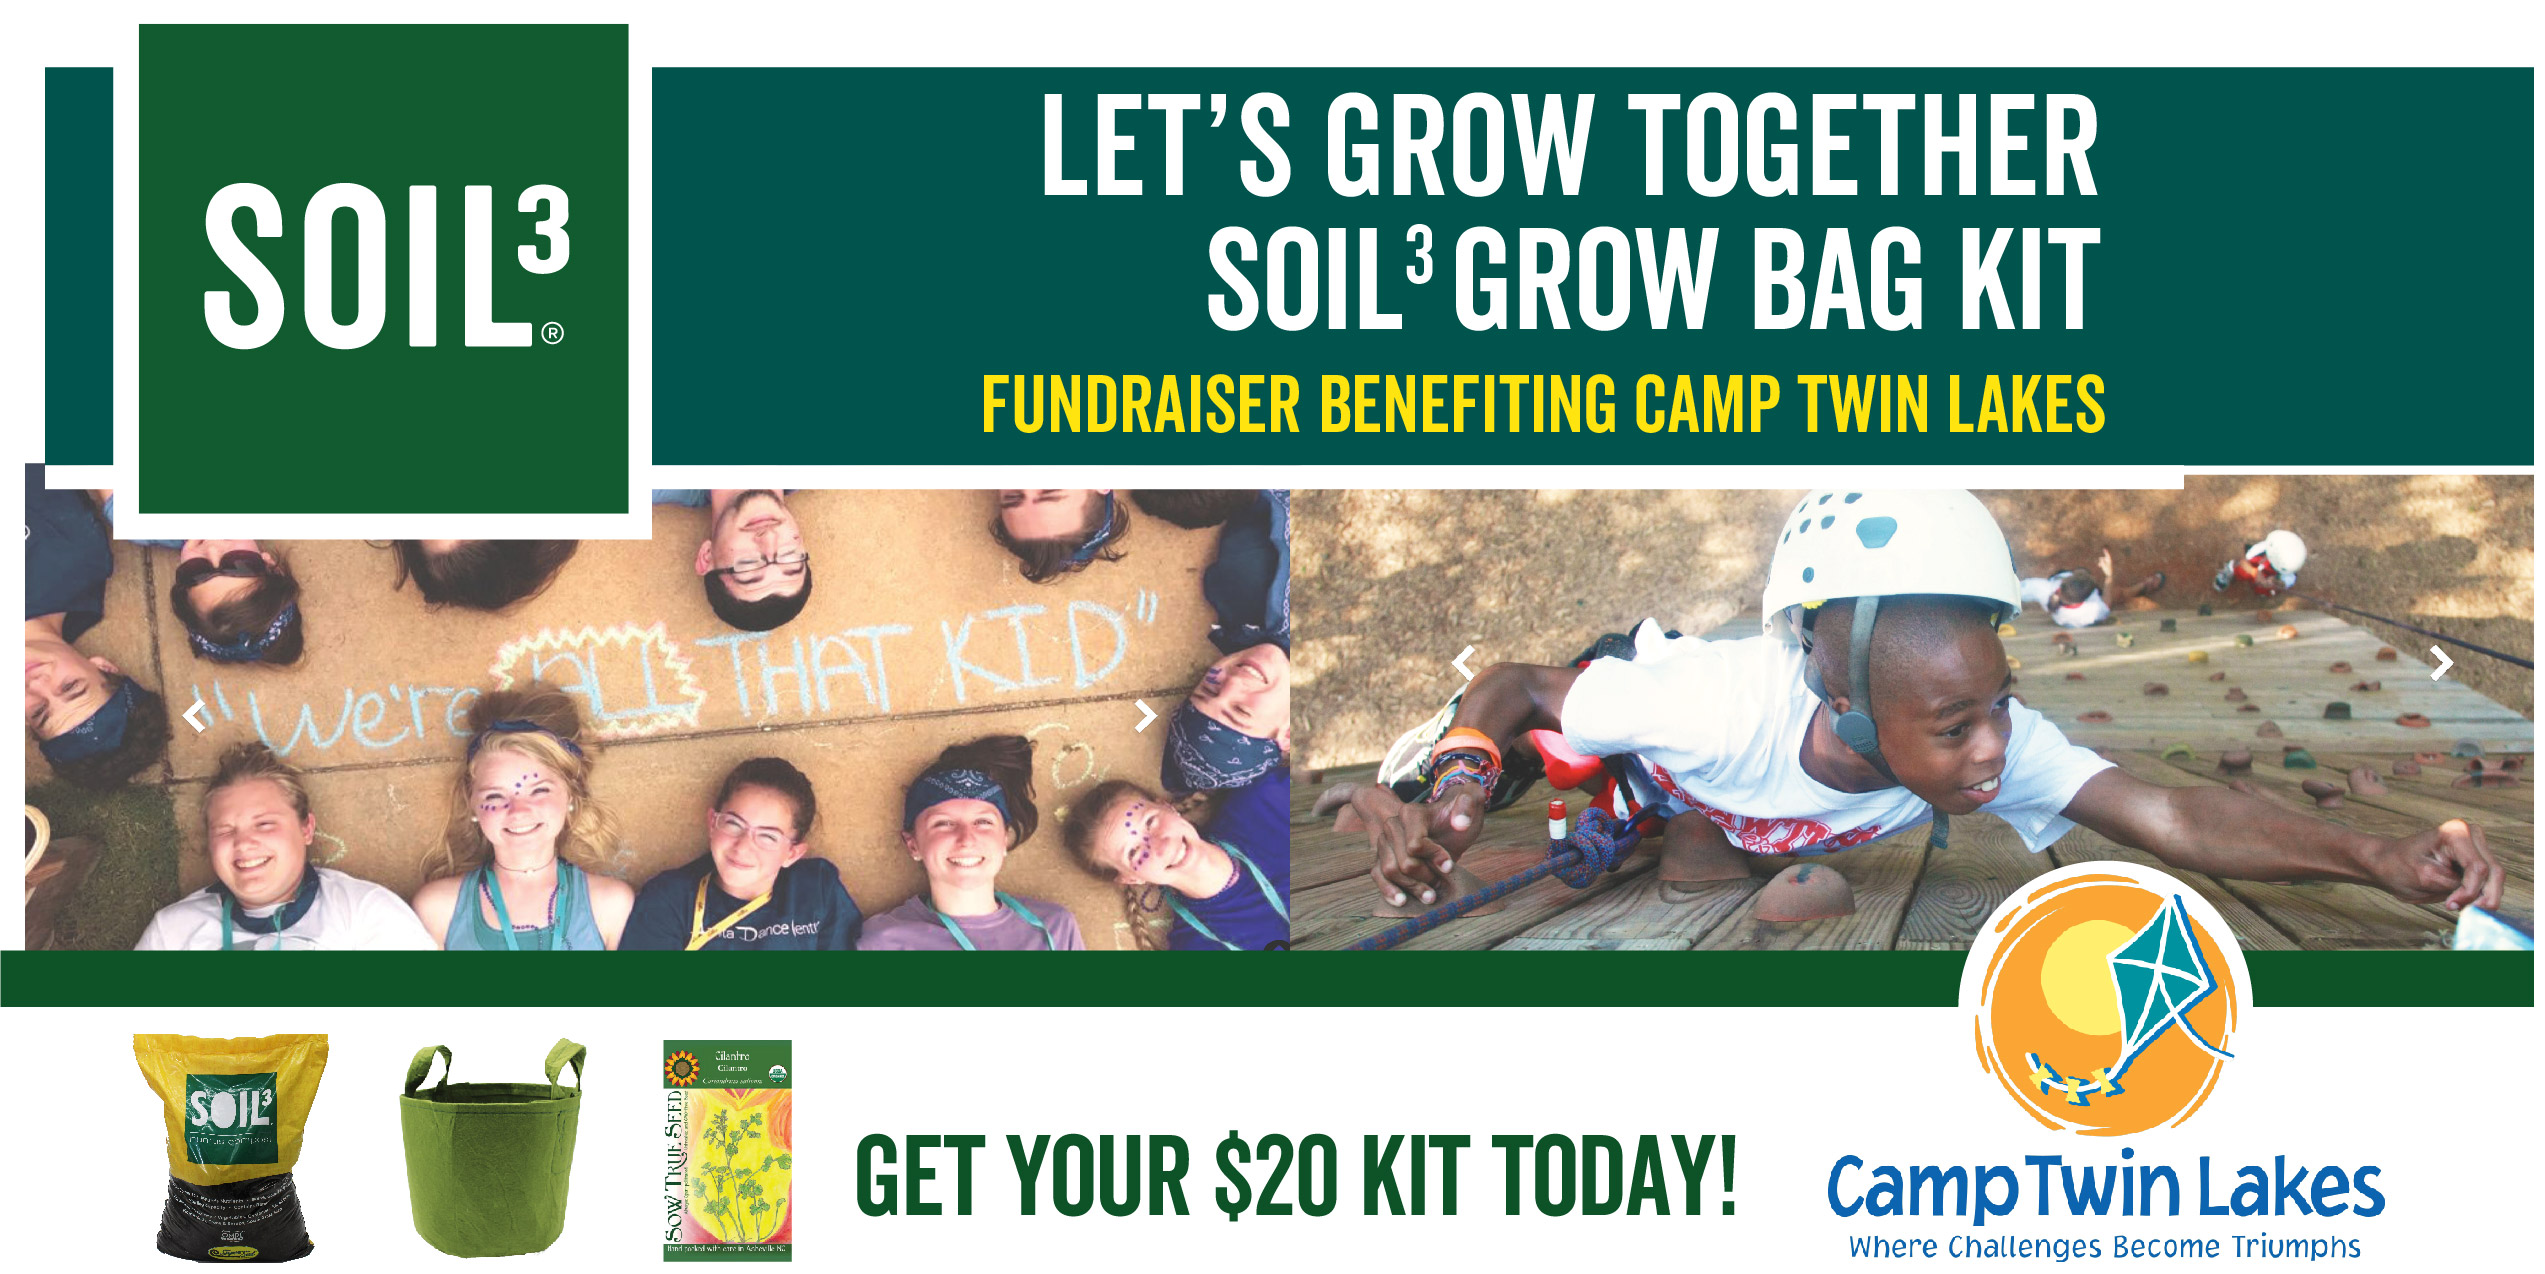 Let's Grow Together Soil3 Grow Bag Kit